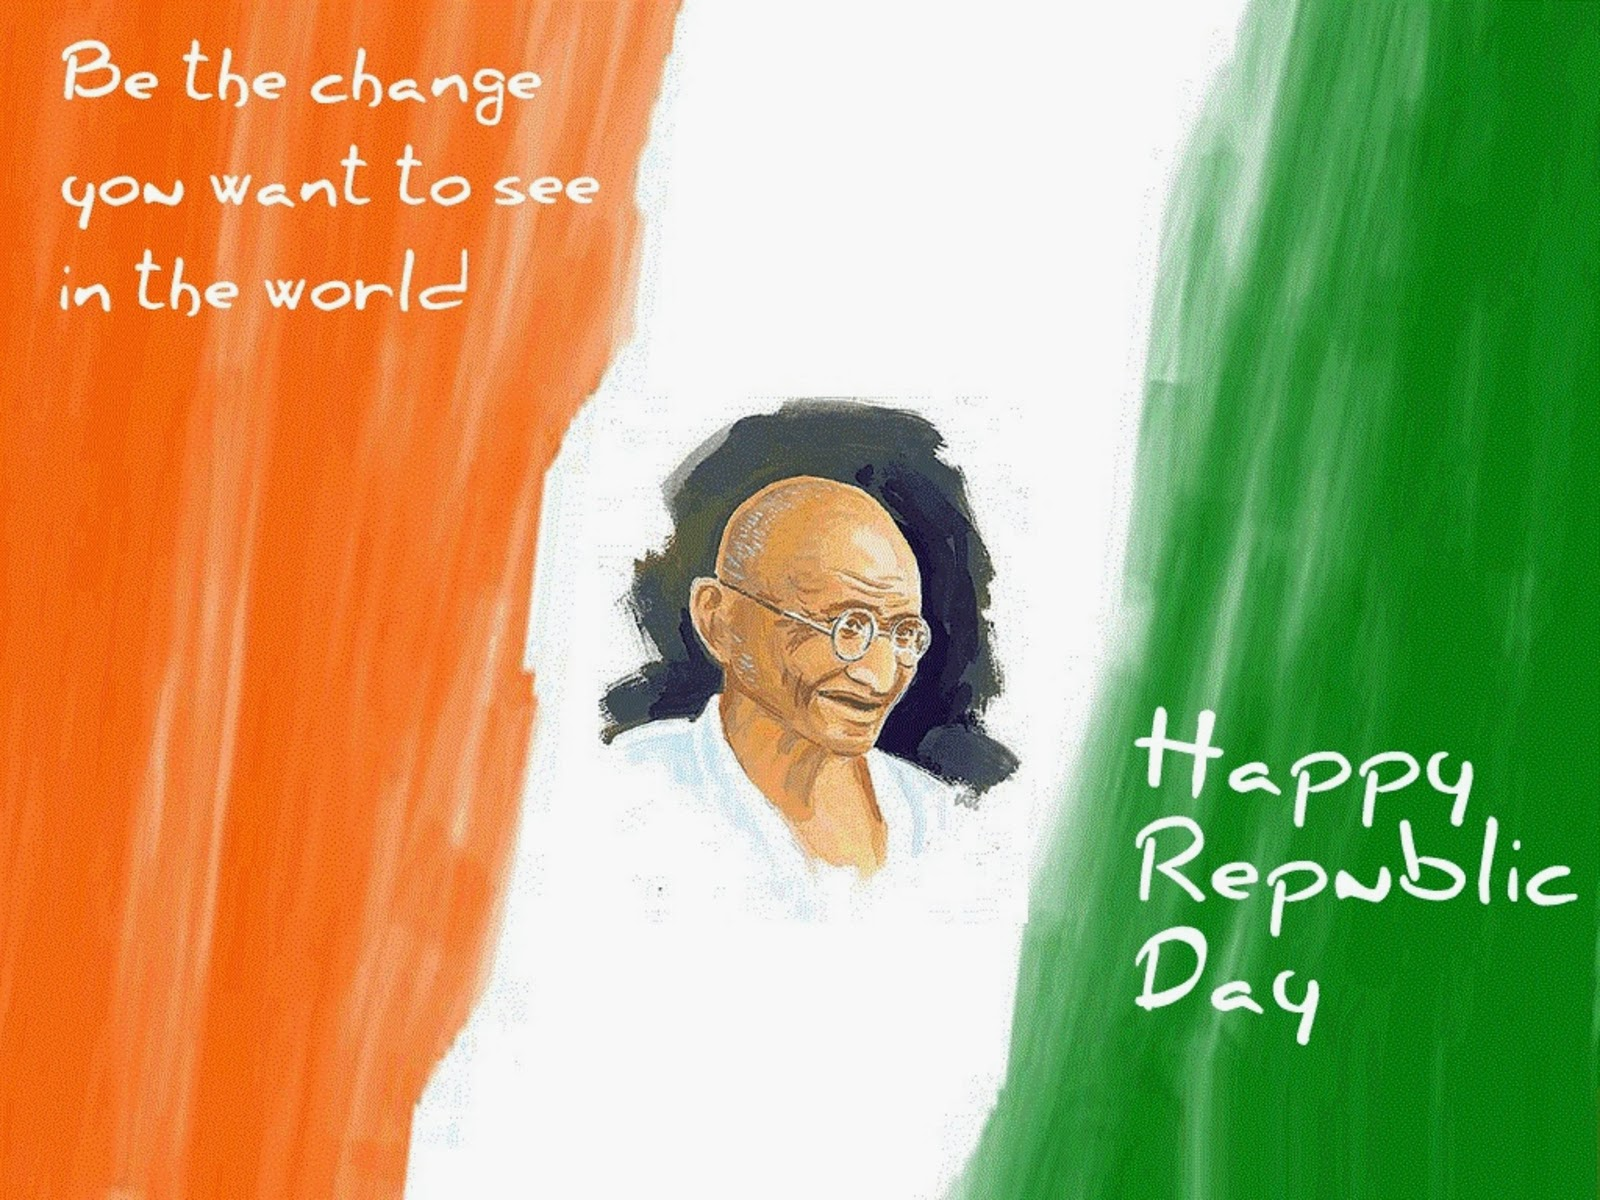 Essay on the help republic day in hindi